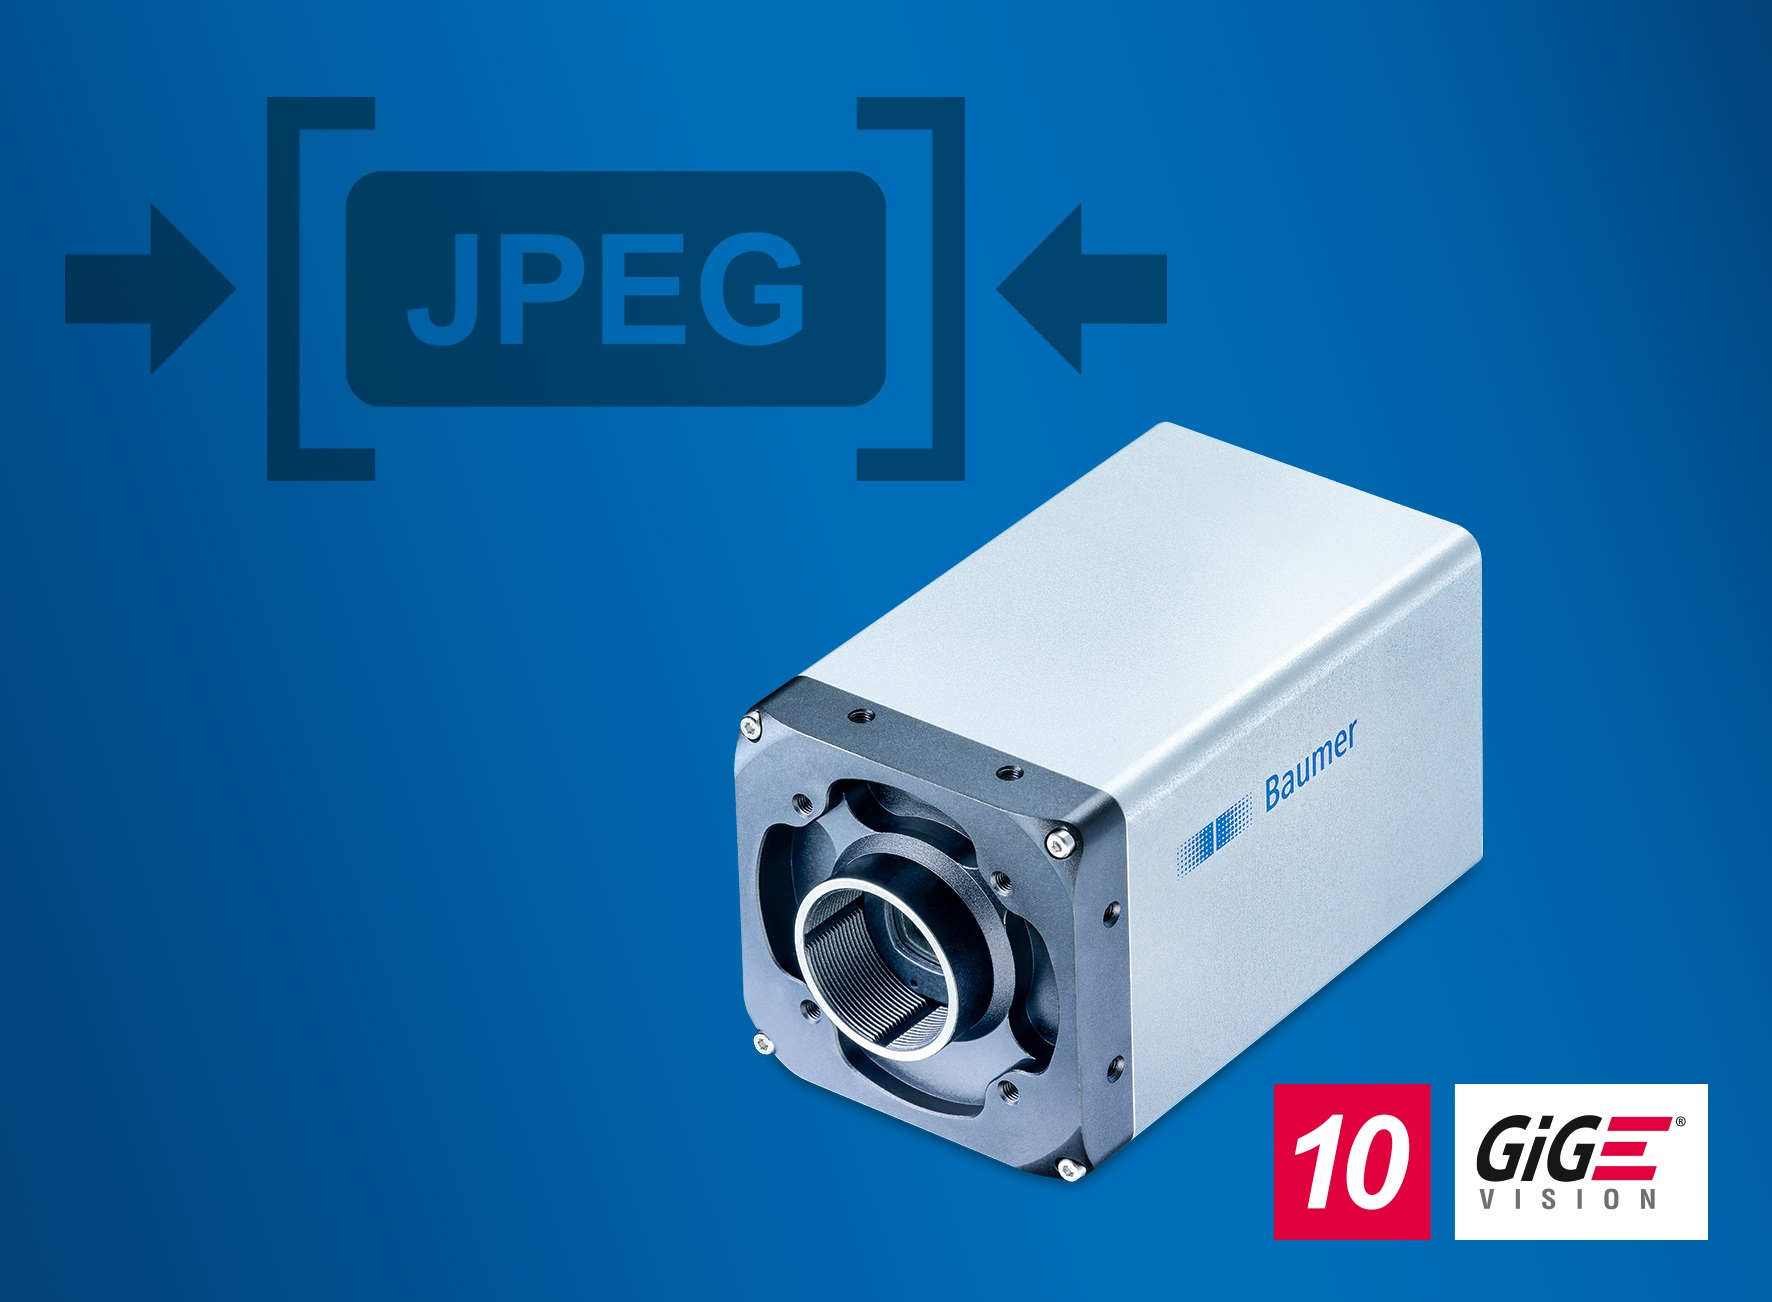 The high-speed LXT cameras with integrated JPEG image compression save bandwidth, CPU load, and storage capacity for a simpler and more cost-effective system design.